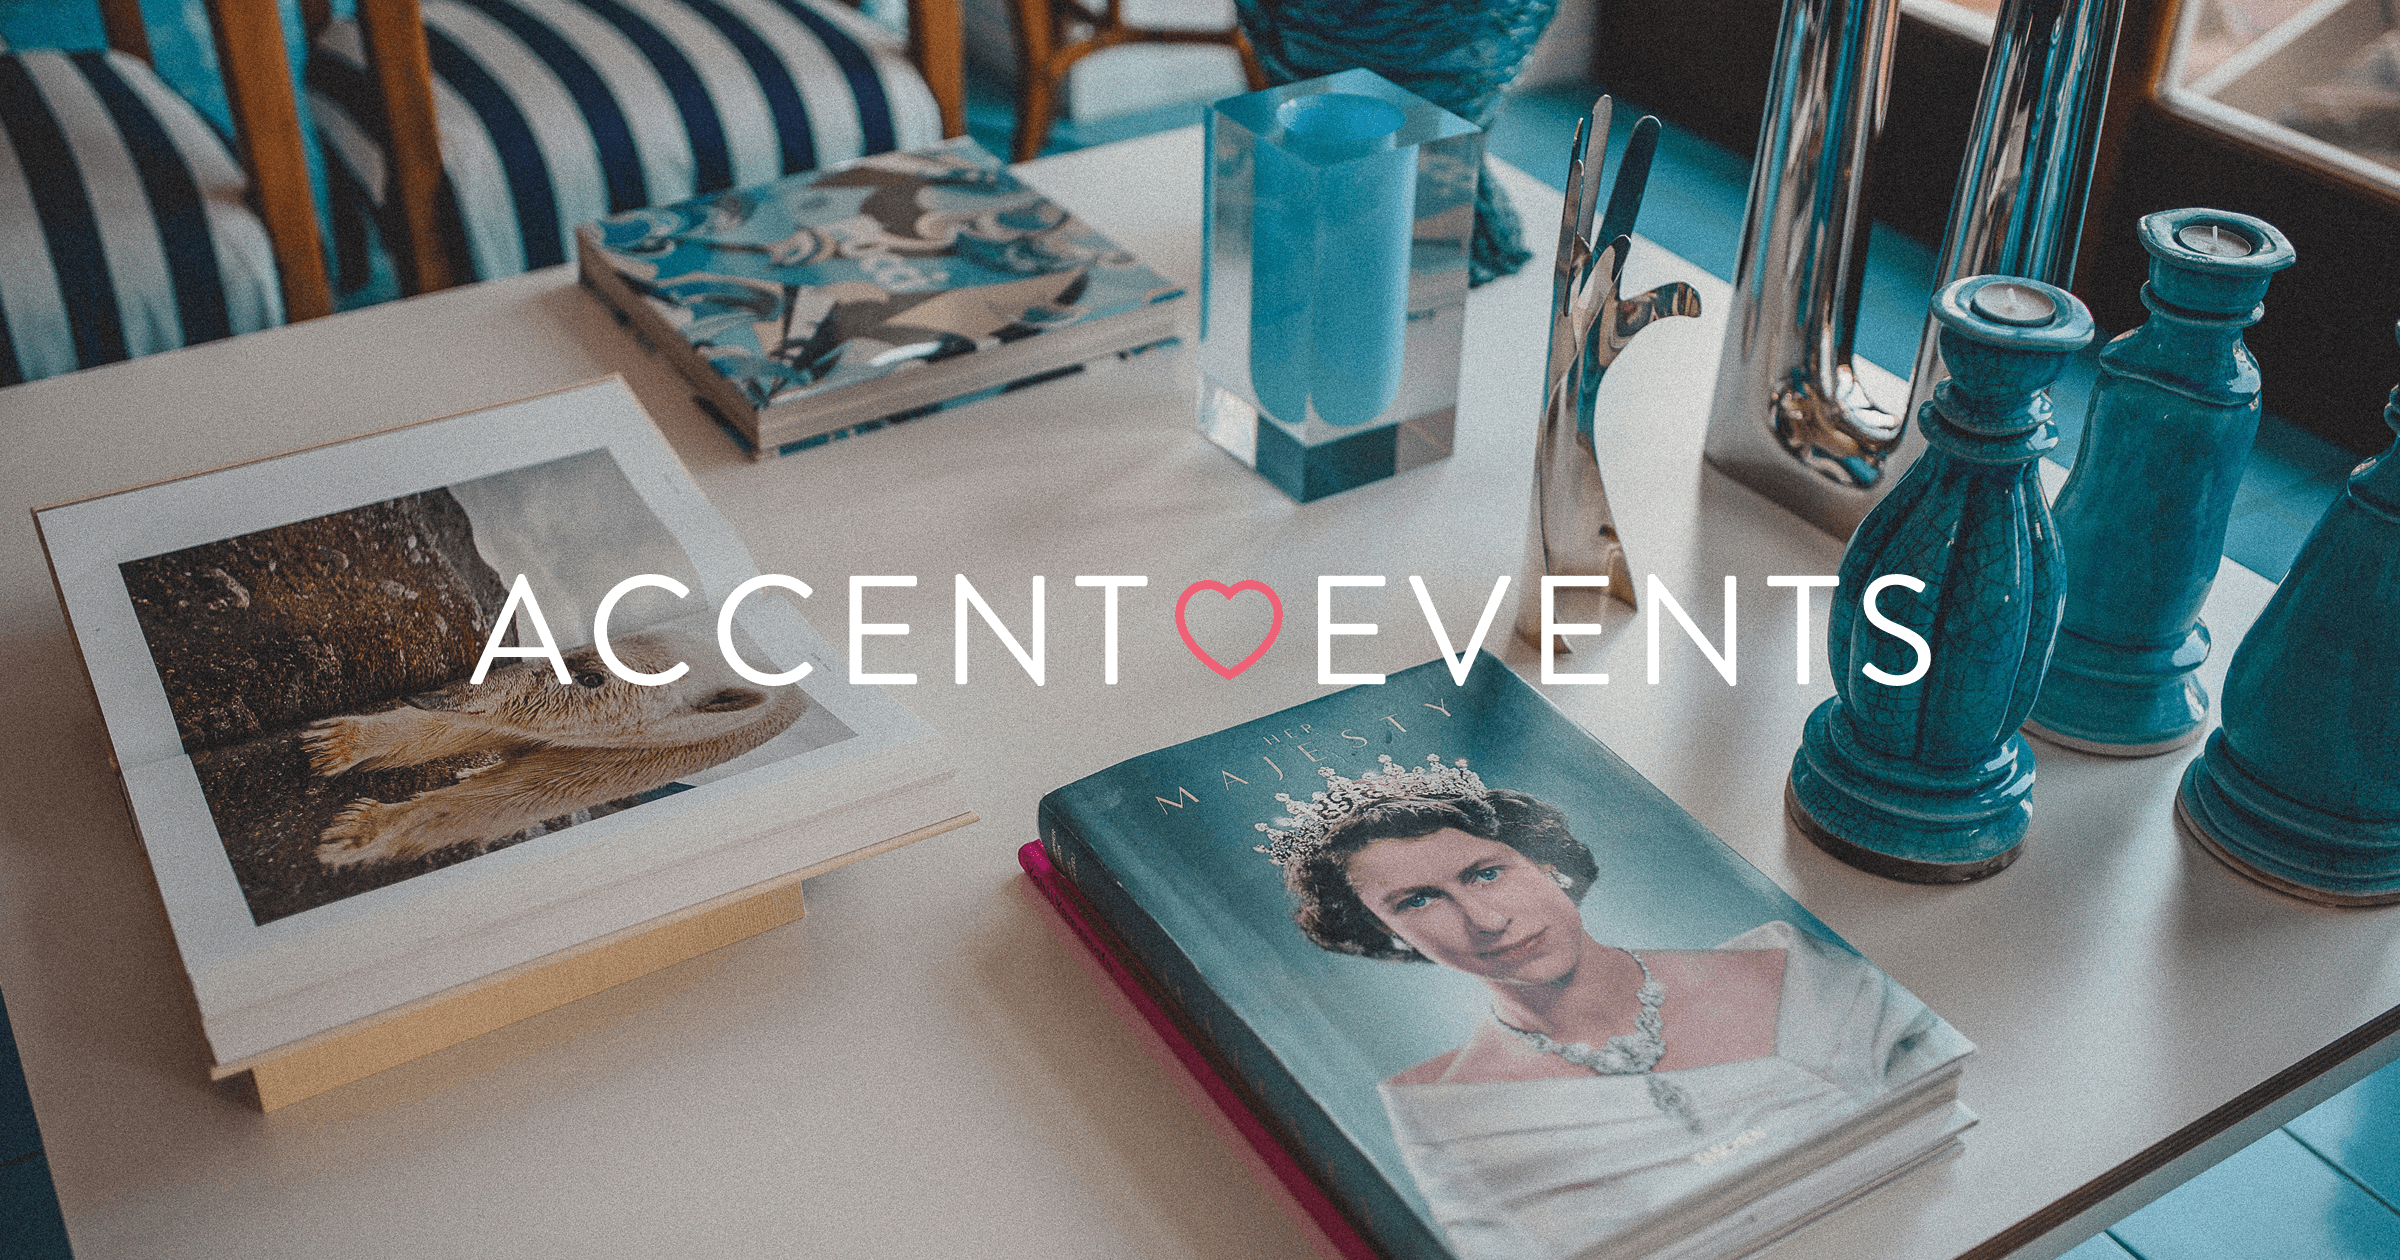 Accent Events branding